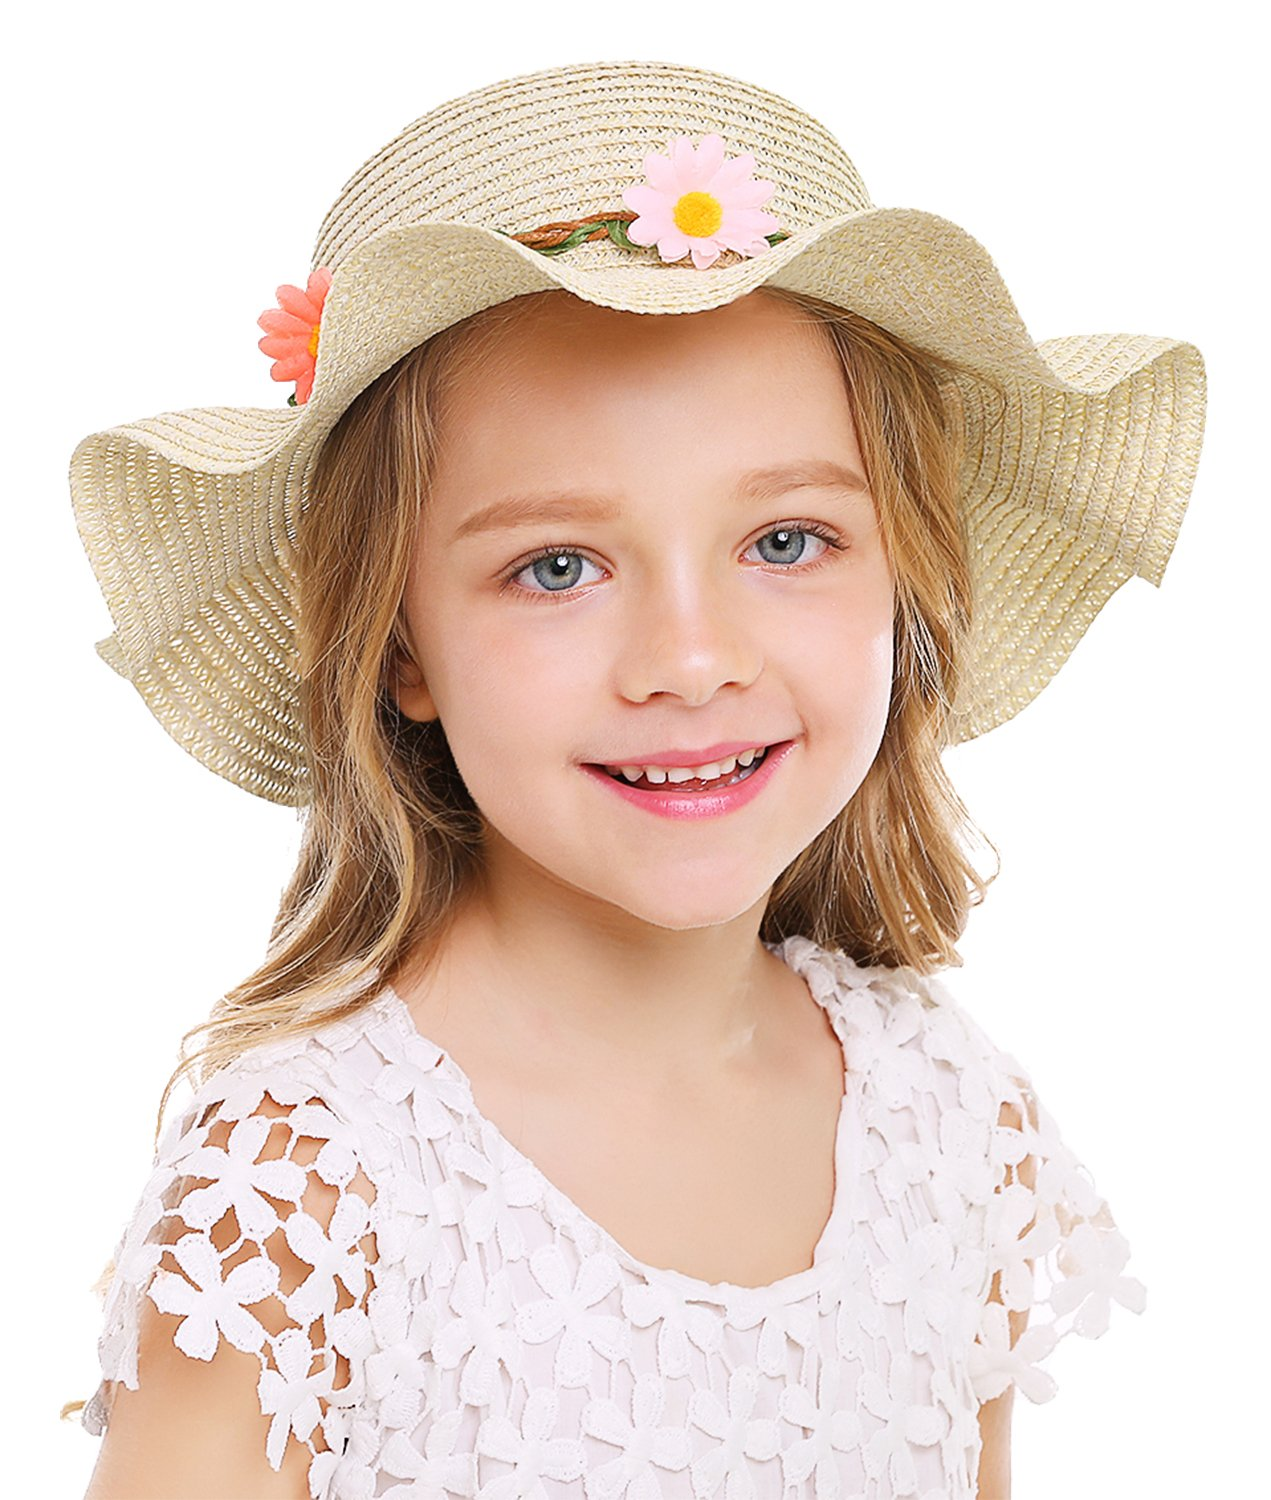 Bienvenu Sun Straw Hat Kids Girls Large Wide Brim Travel Beach Beanie Cap,Beige by Bienvenu (Image #5)